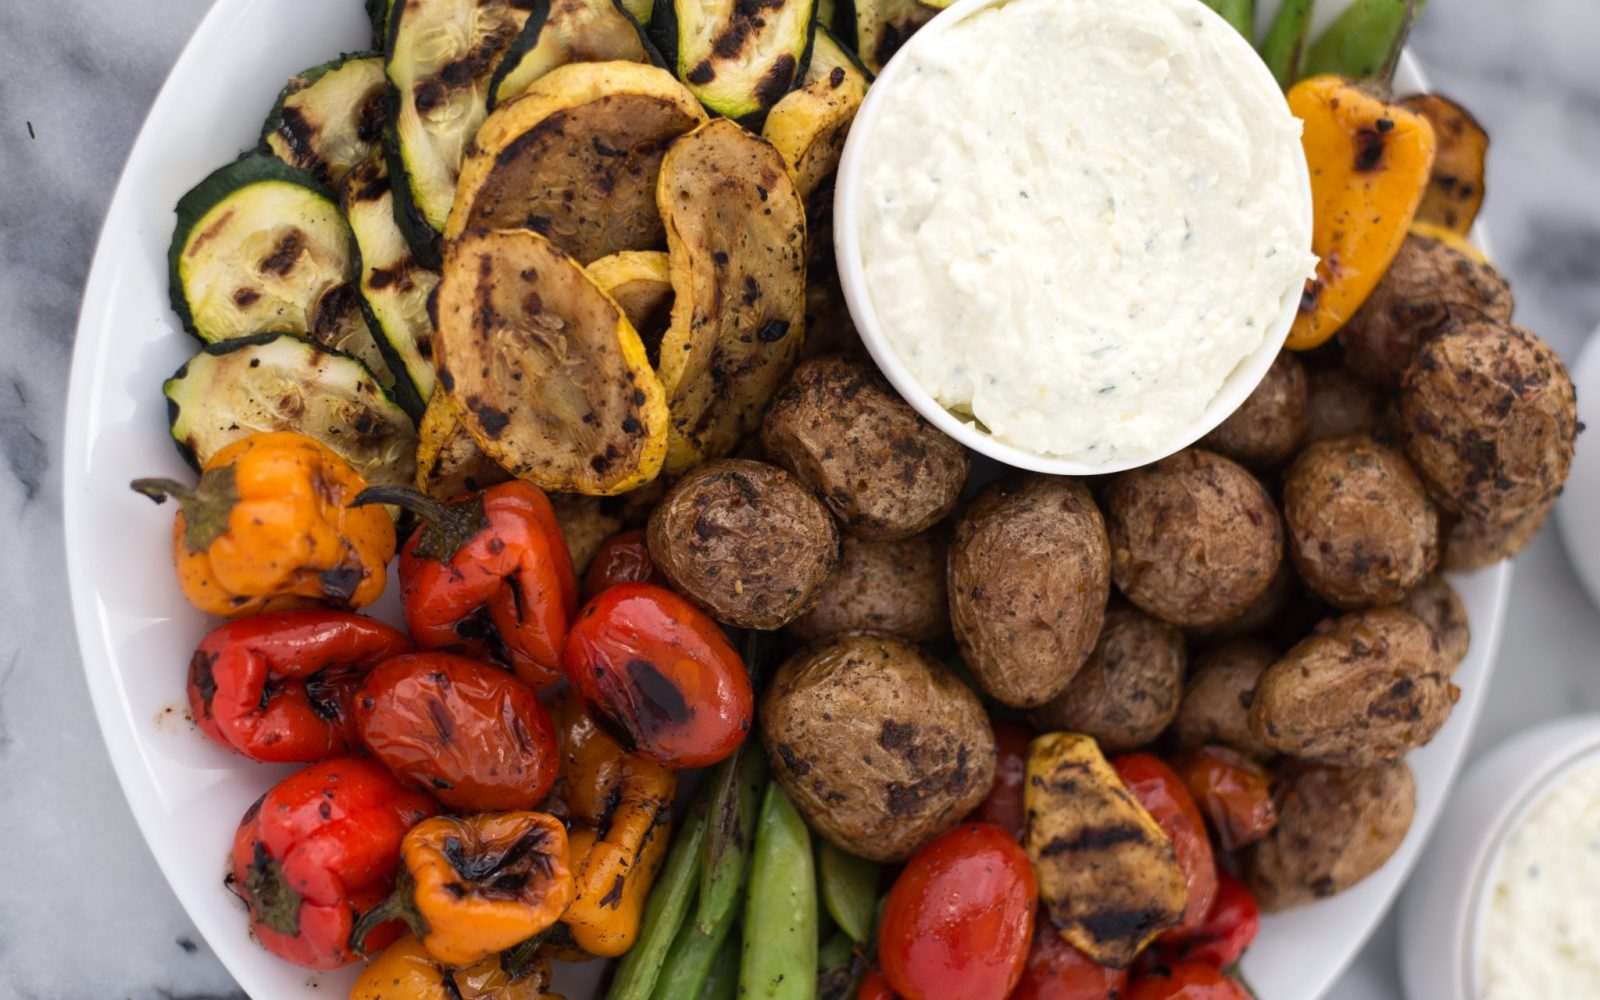 Grilled Vegetable Platter With Lemon-Feta Dip